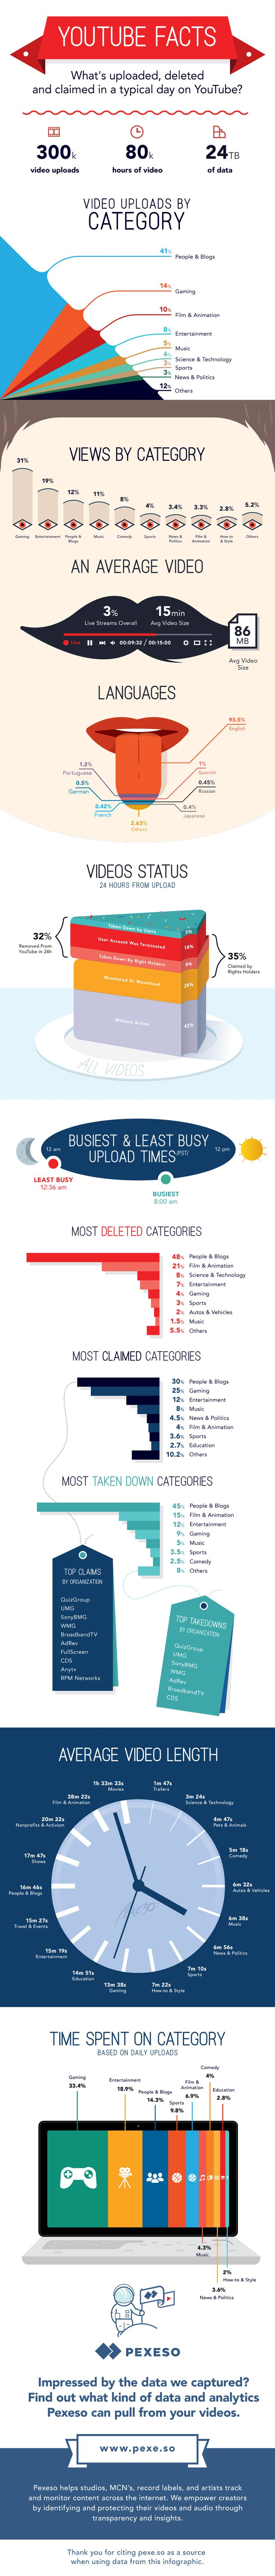 What's uploaded, deleted and claimed in a typical day on #YouTube? - Do you fancy an infographic? There are a lot of them online, but if you want your own please visithttp://www.linfografico.com/prezzi/ Online girano molte infografiche, se ne vuoi realizzare una tutta tua visitahttp://www.linfografico.com/prezzi/